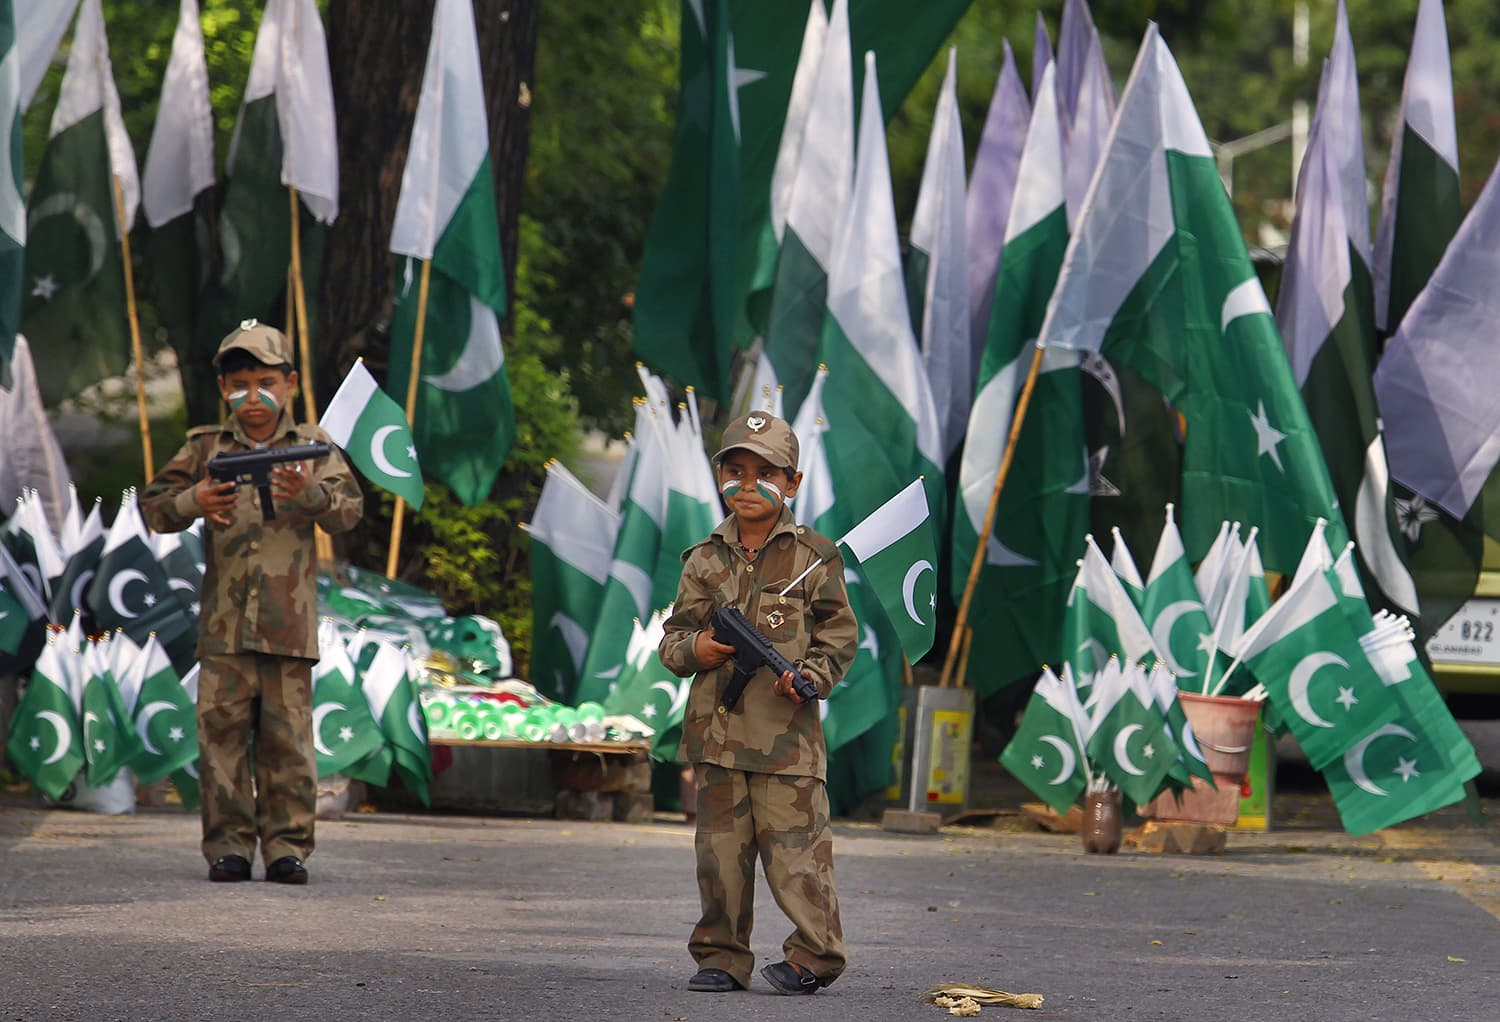 Children hold toy guns and dress as army soldiers to attract customers into their father's stall selling national flags ahead of country's 69th Independence Day in Islamabad. — AP